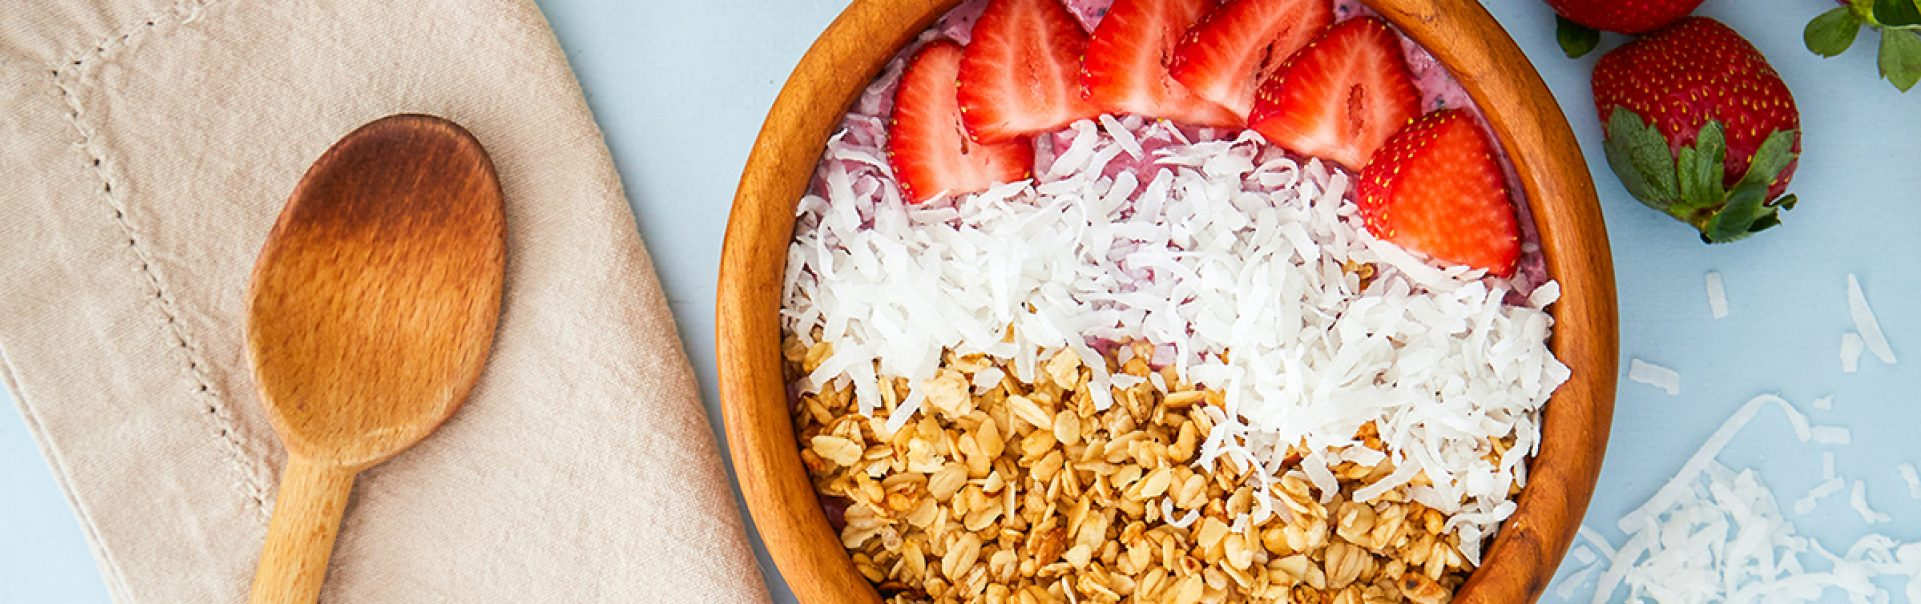 A bowl of strawberries, coconut and grains.